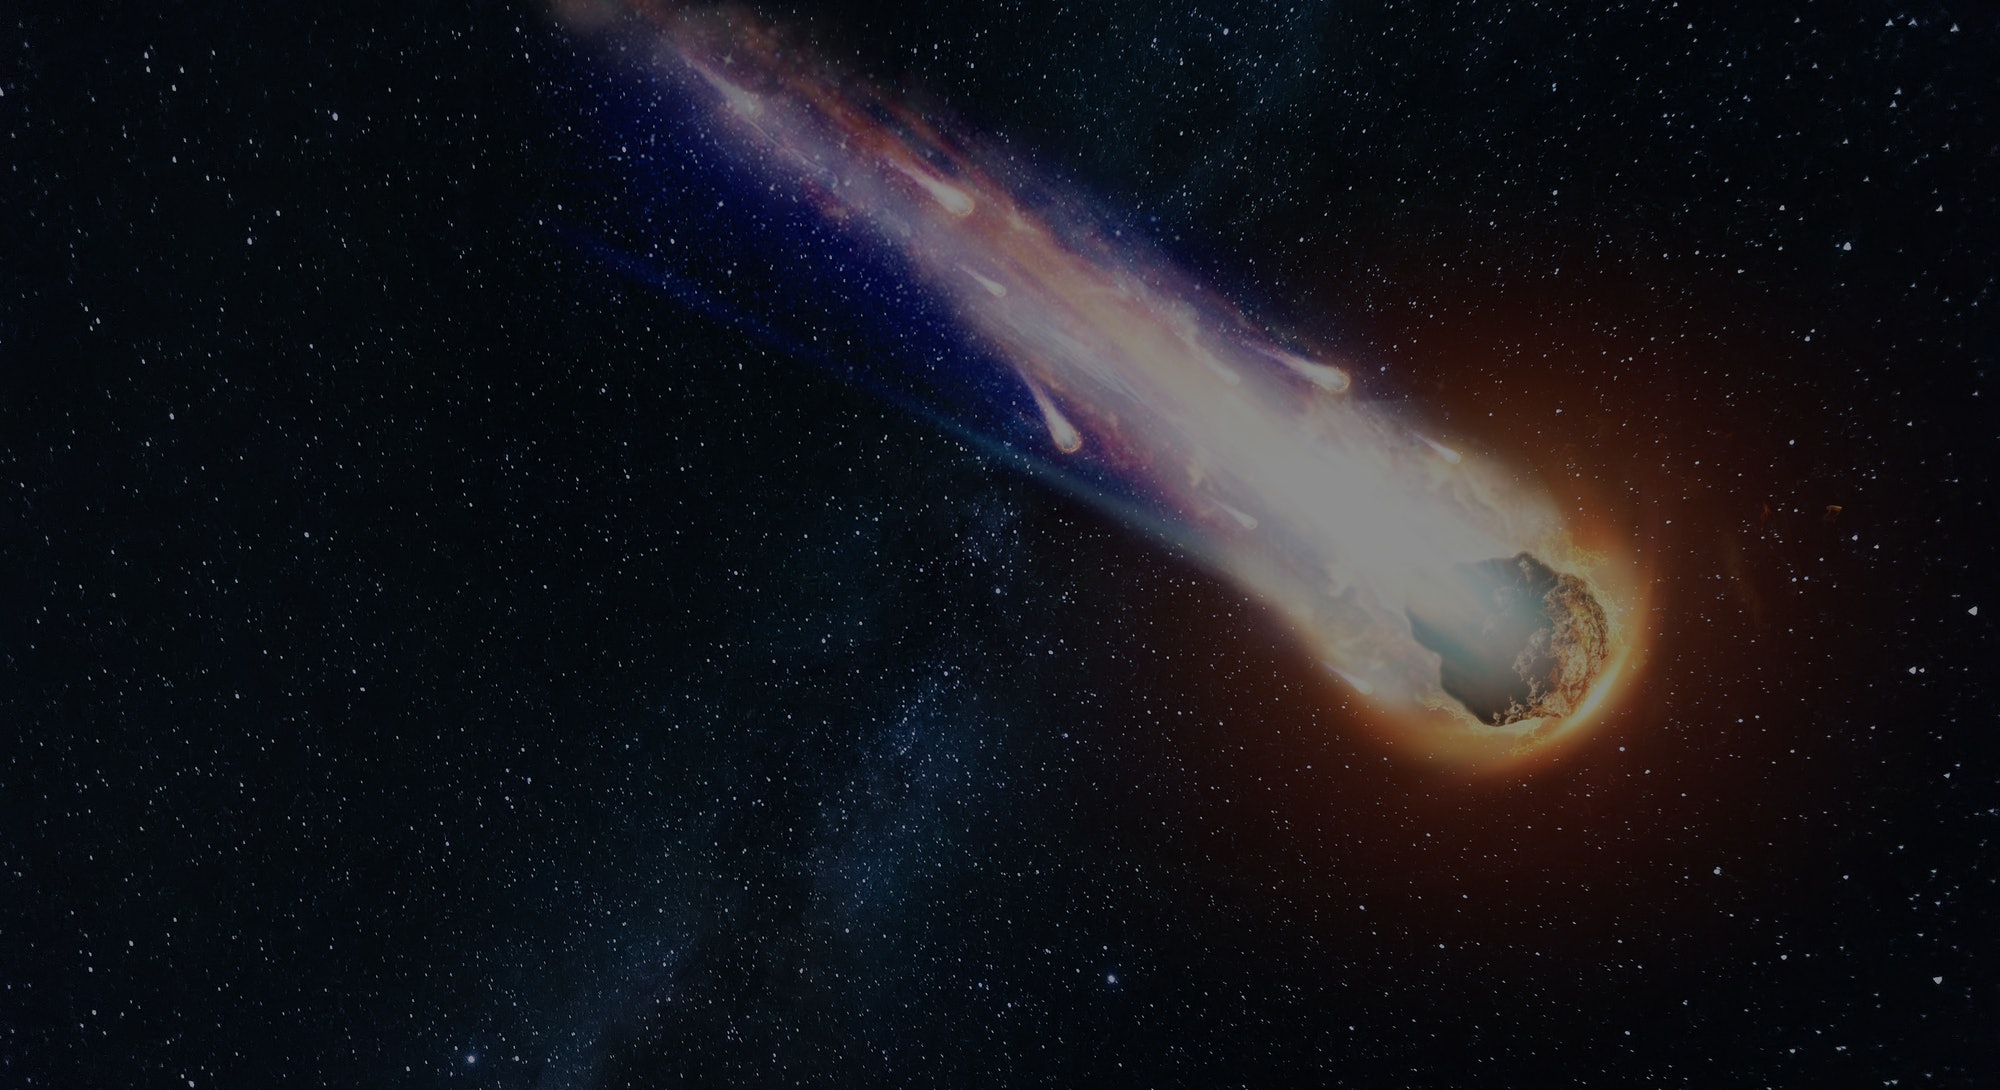 A comet, an asteroid, a meteorite falls to the ground against a starry sky. Attack of the meteorite....